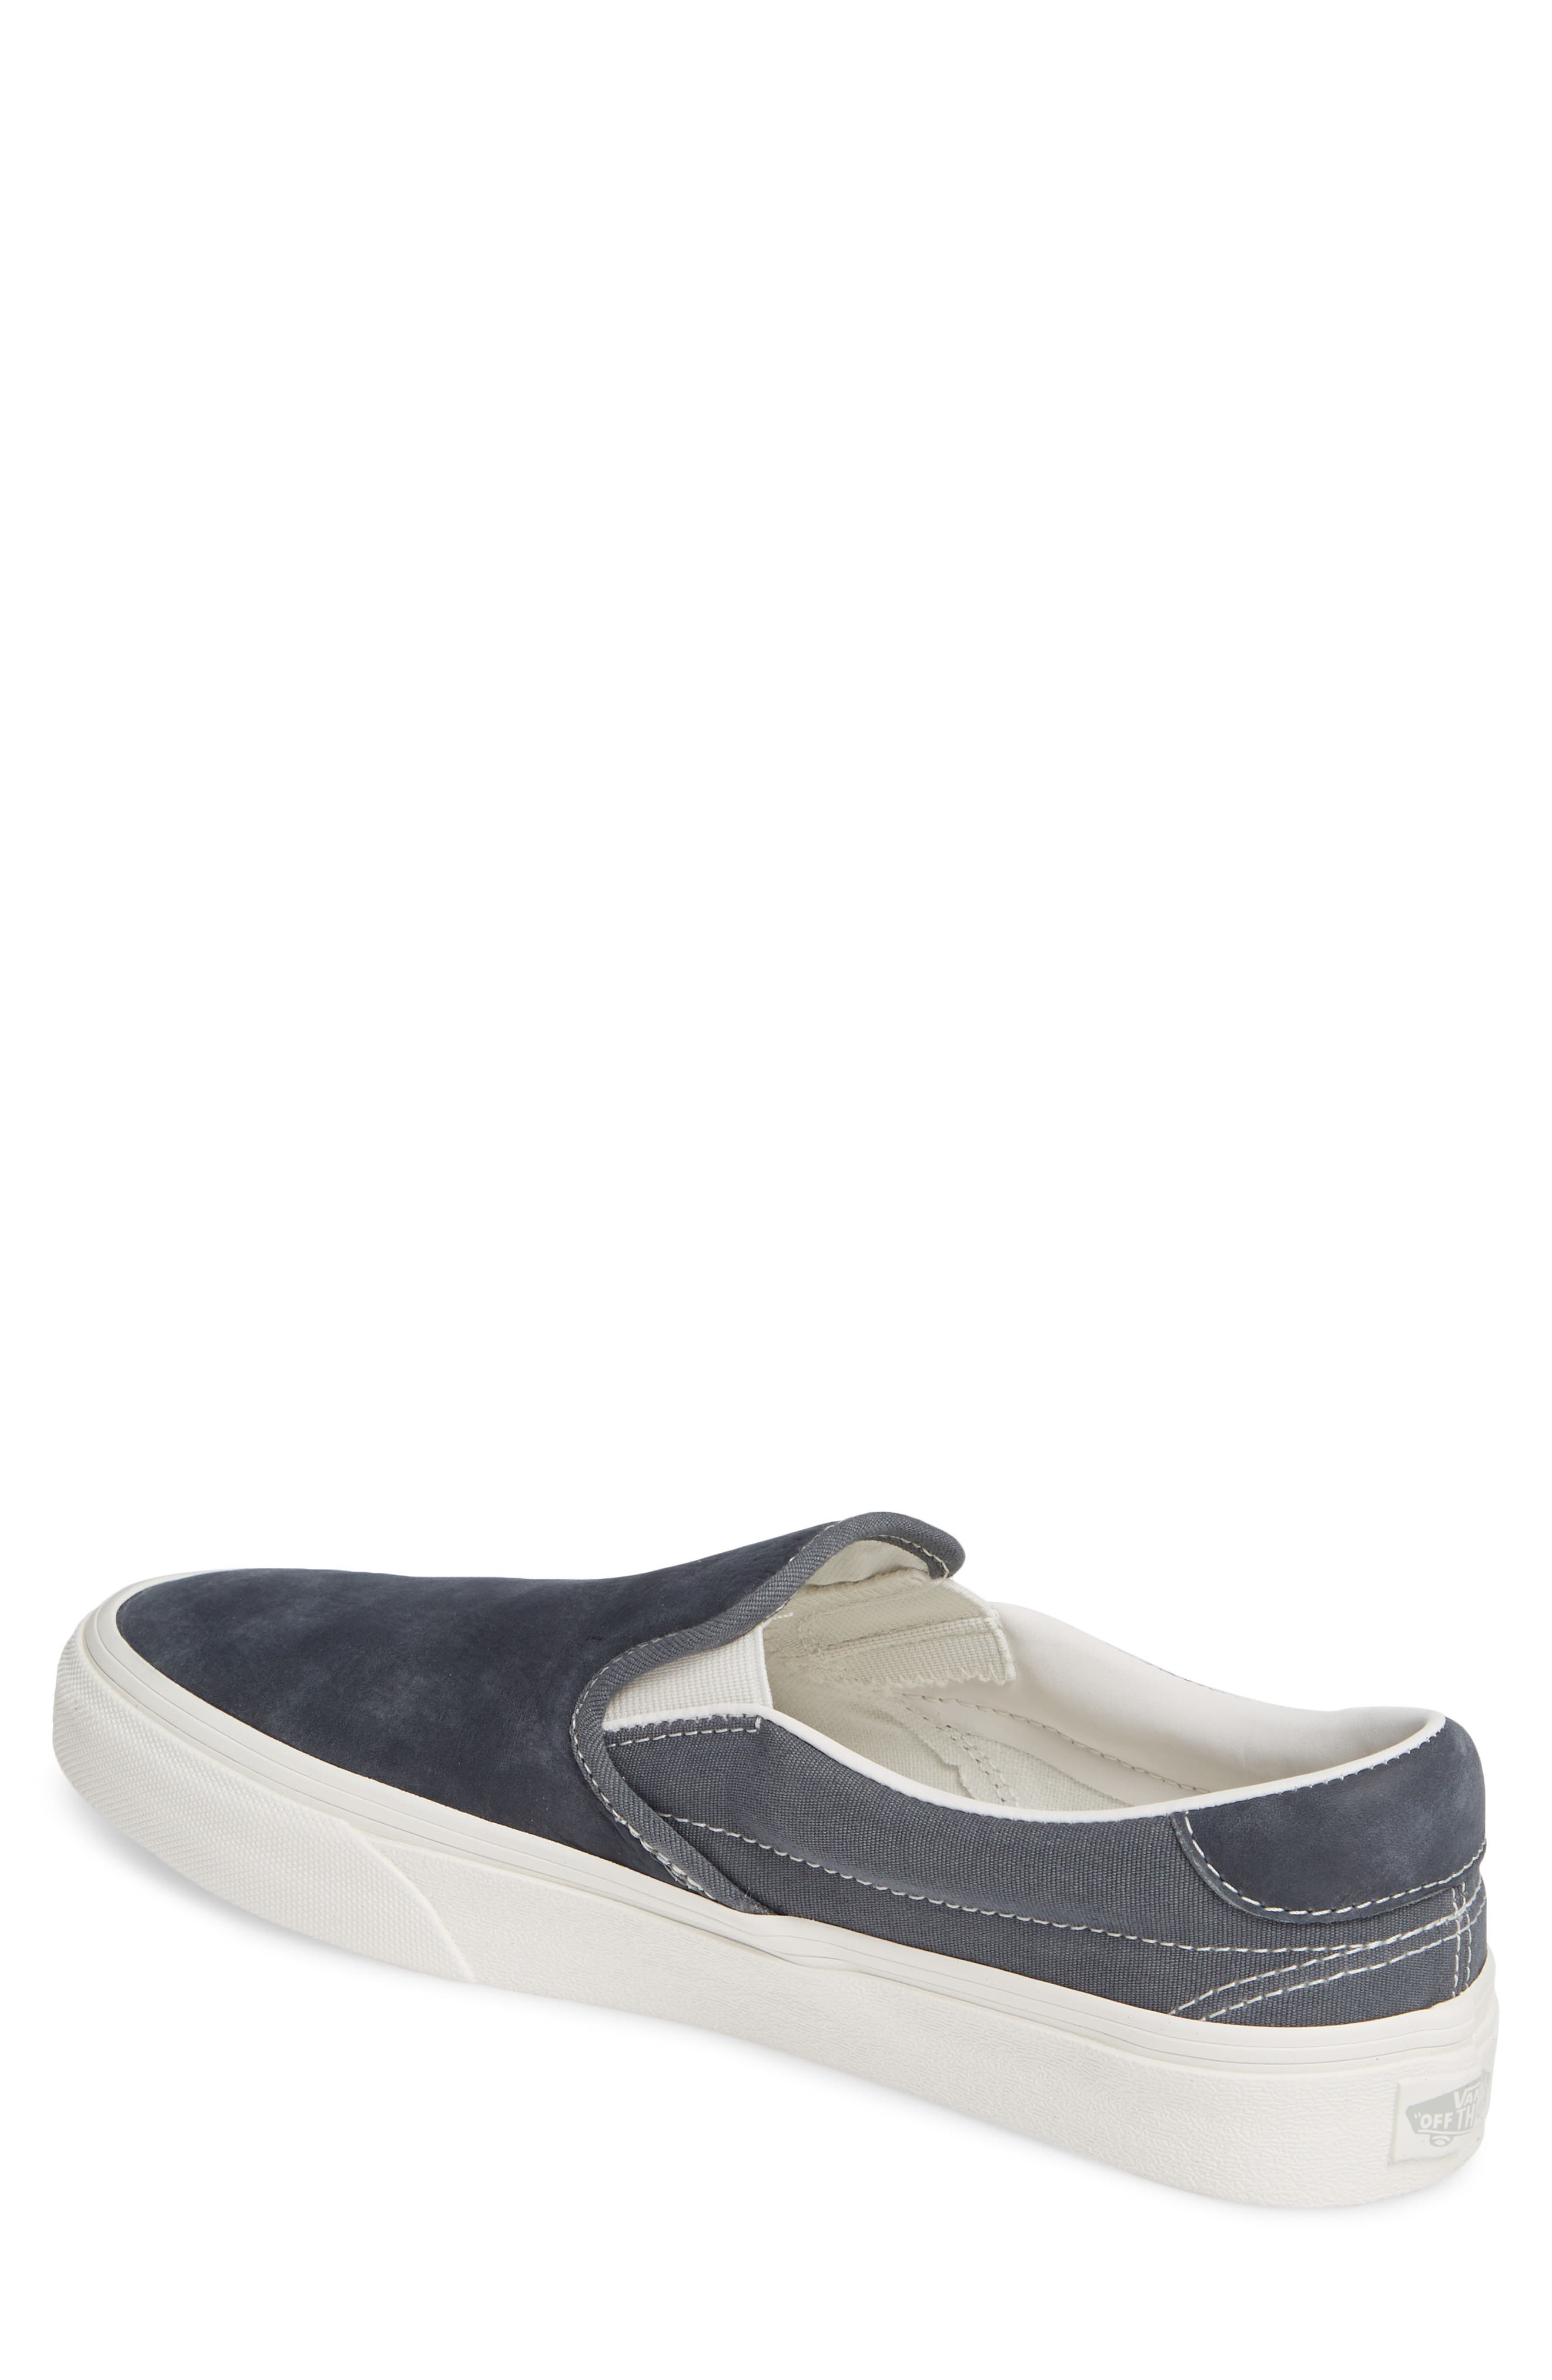 ,                             59 Classic Slip-On Sneaker,                             Alternate thumbnail 8, color,                             021